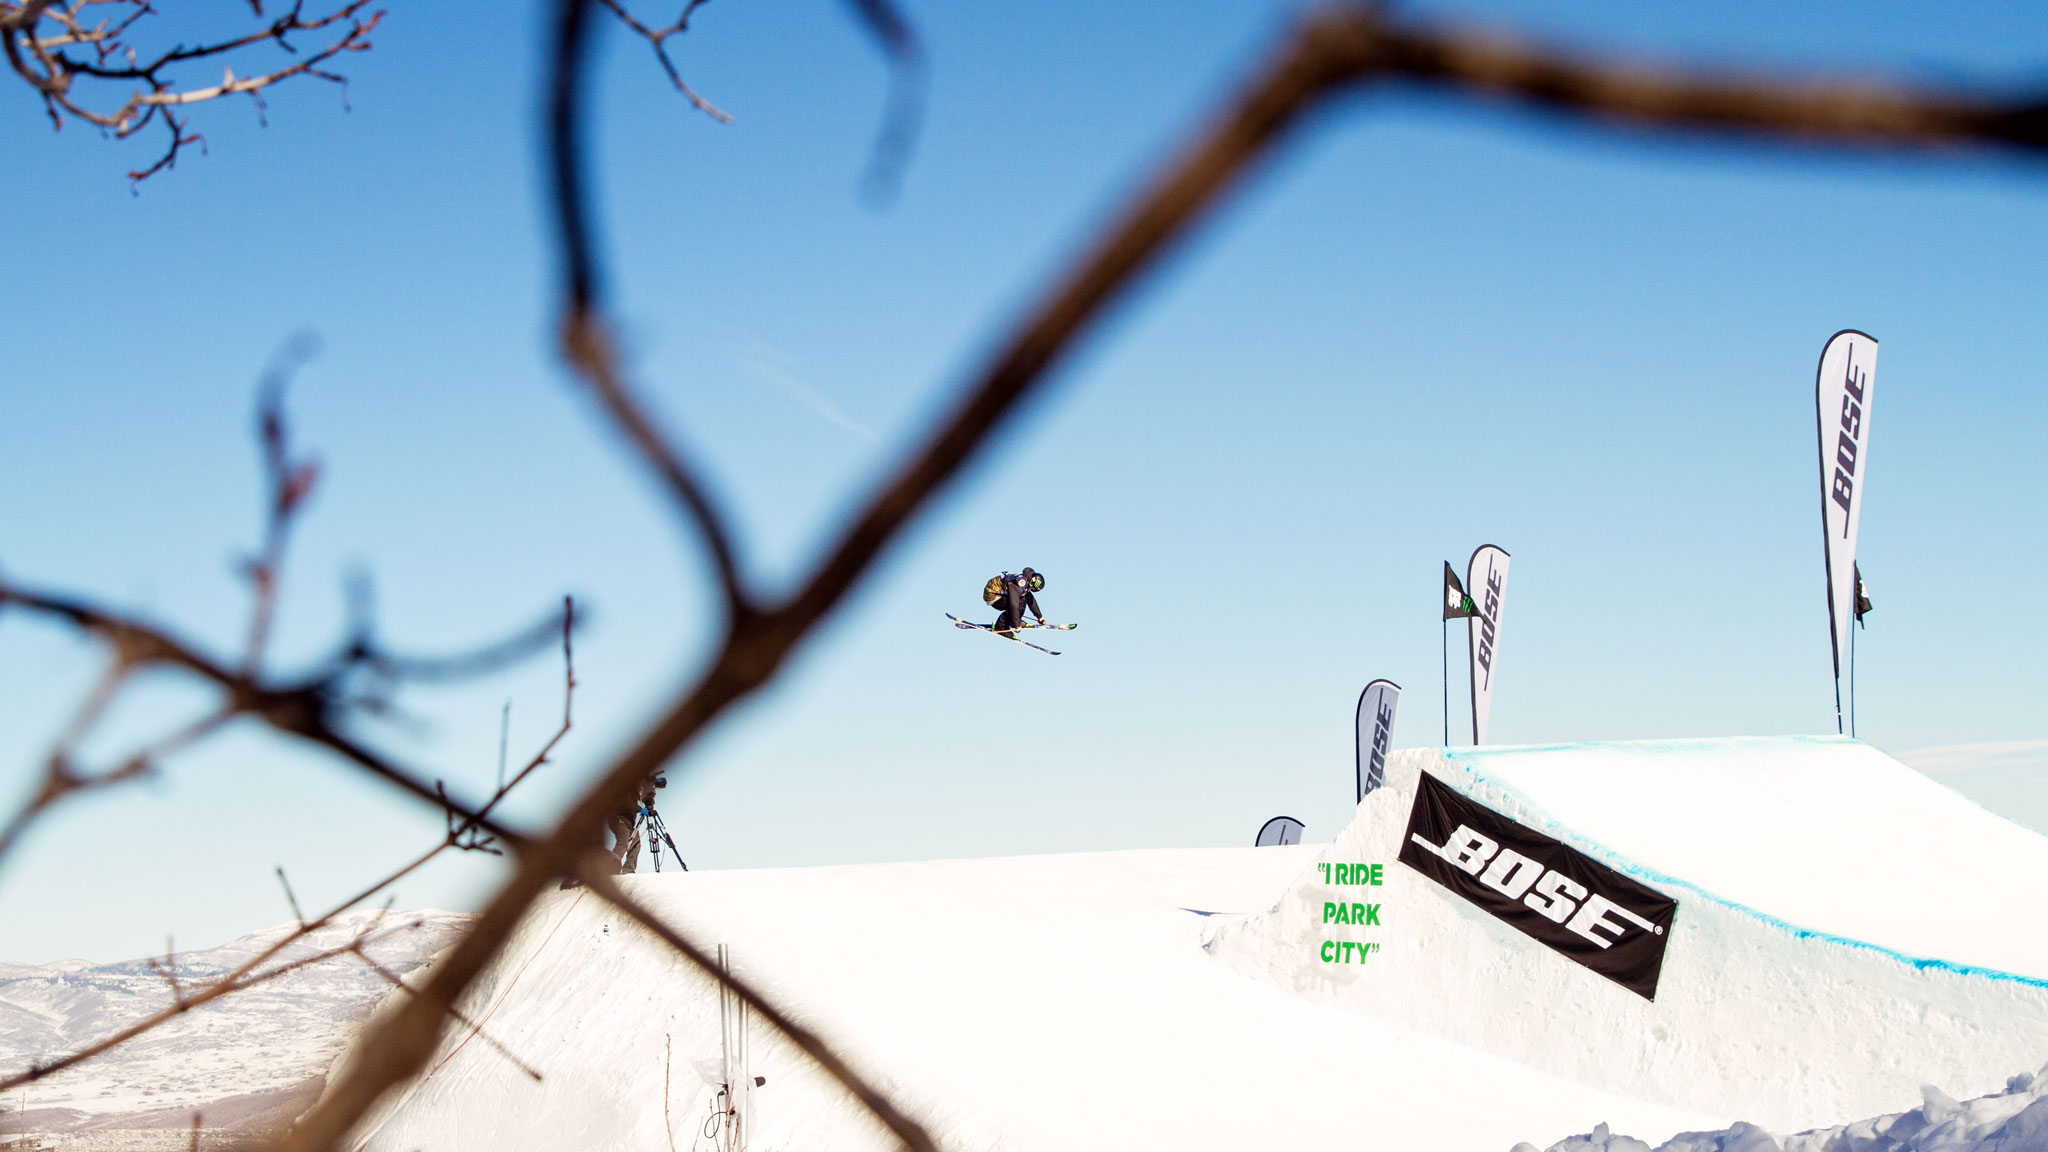 Alex Schlopy won the first of two slopestyle finals at this weekend's Grand Prix at Park City, Utah.